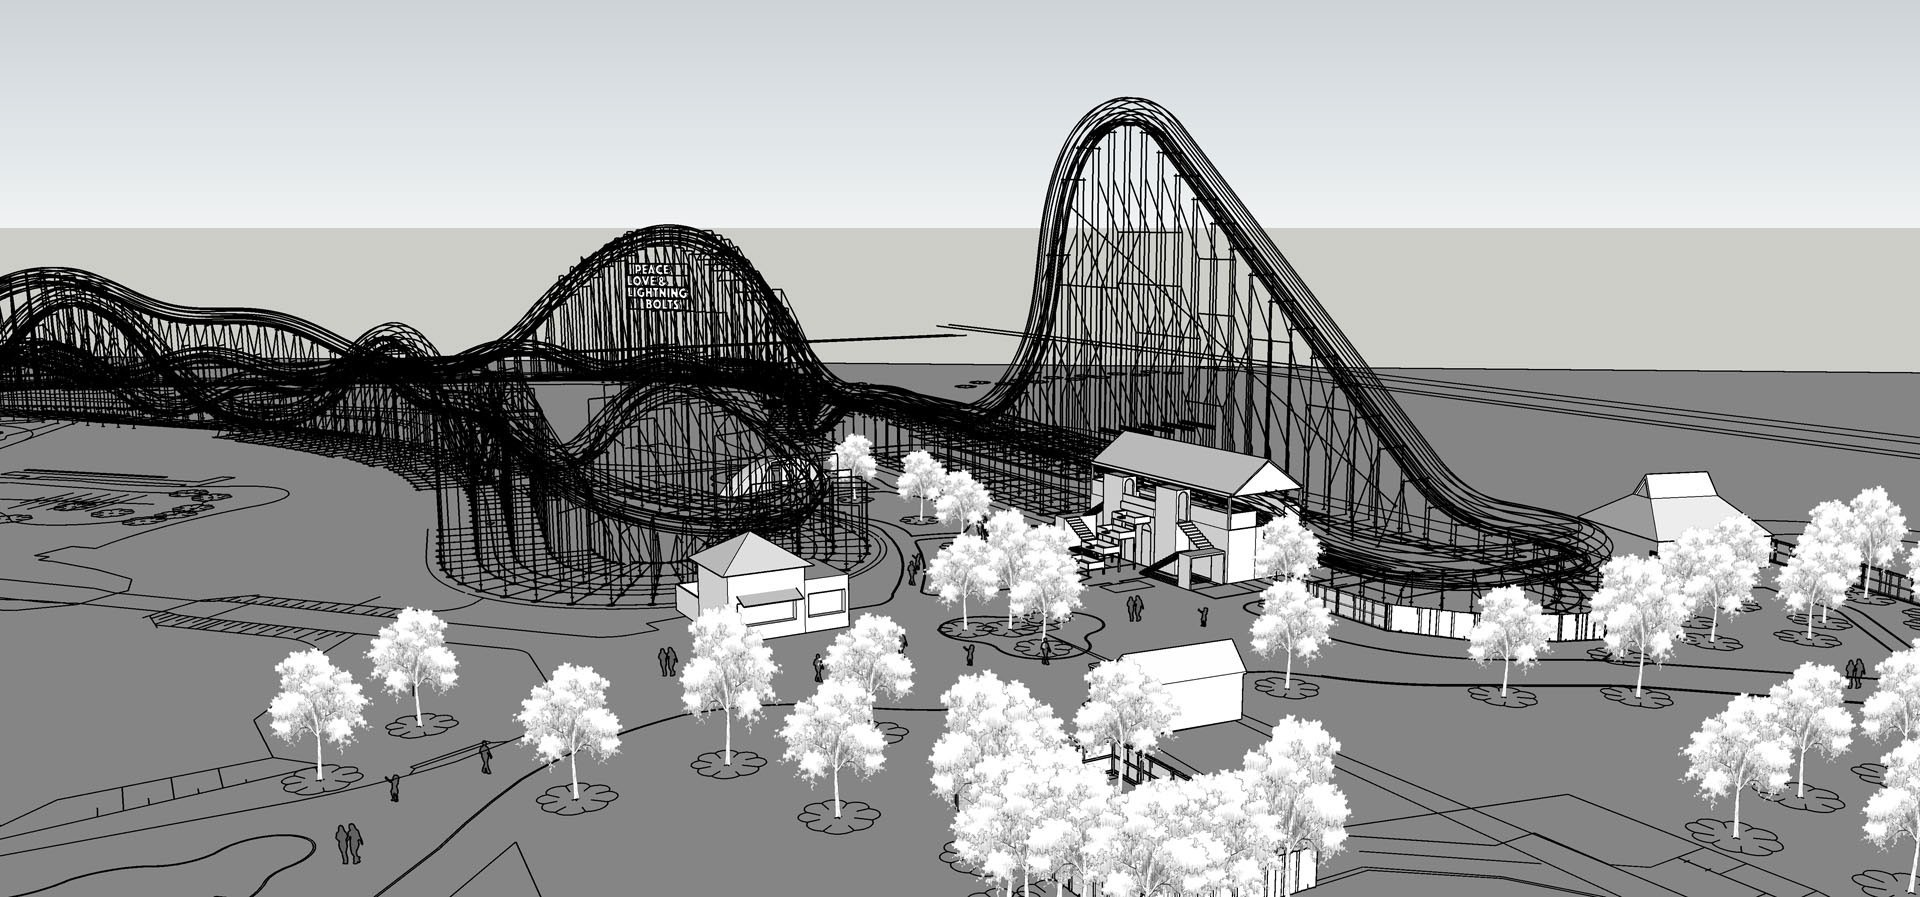 3D design of the Untamed coaster at Walibi Holland